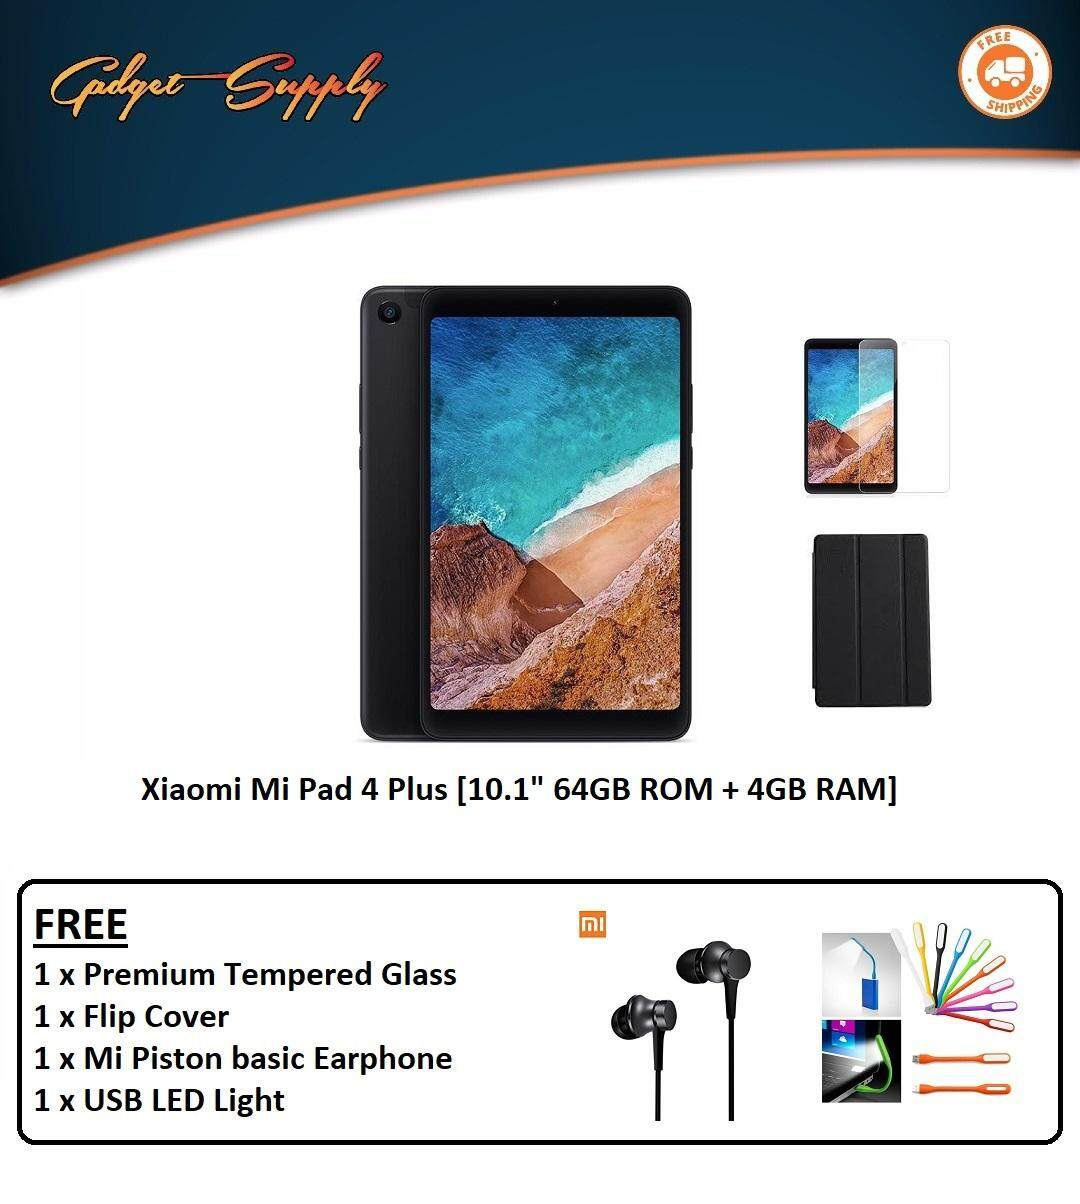 Discounts Up To 90 On Mobiles Tablets Only Lazada Samsung S8 Edge Plus Lte 62ampquot 4 64gb 12 8mp Ready Stocks Xiaomi Mi Pad 101 Rom